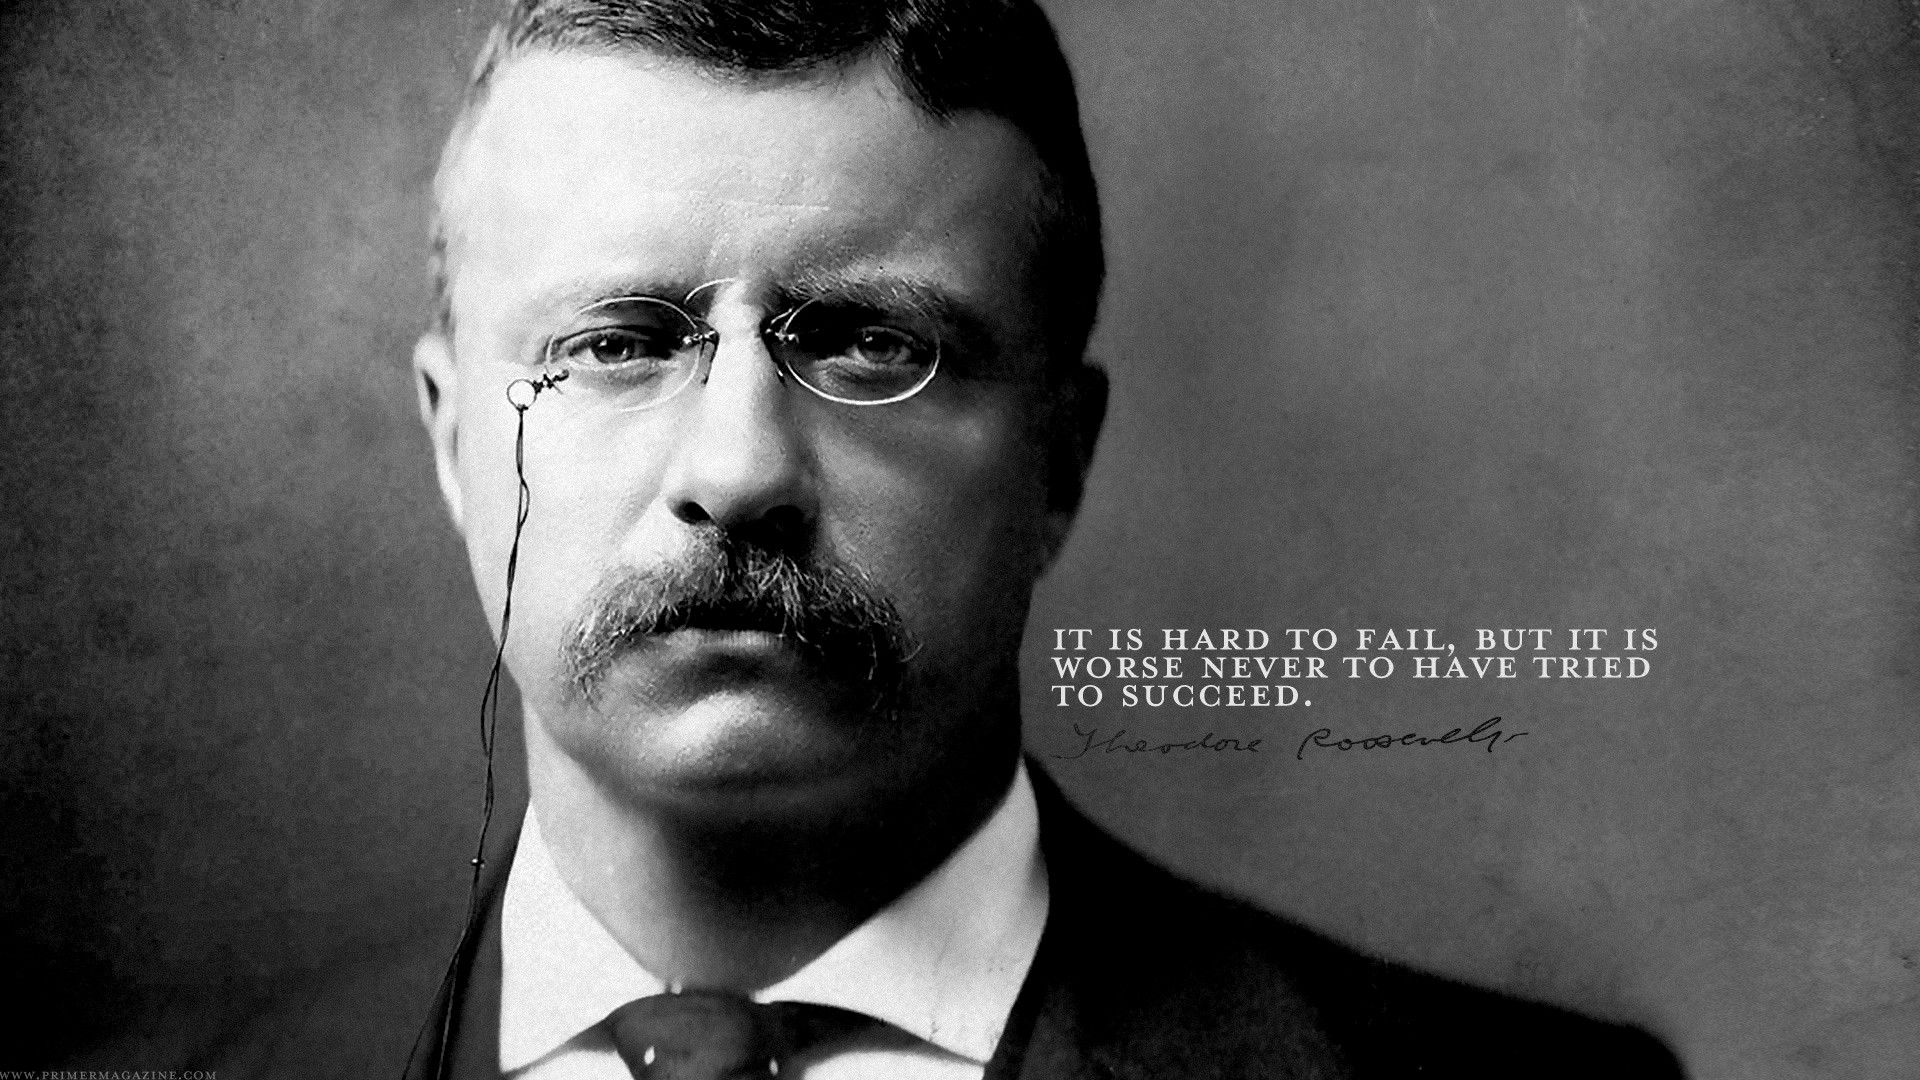 The Worst At Theodore Roosevelt Quotes Quotesgram